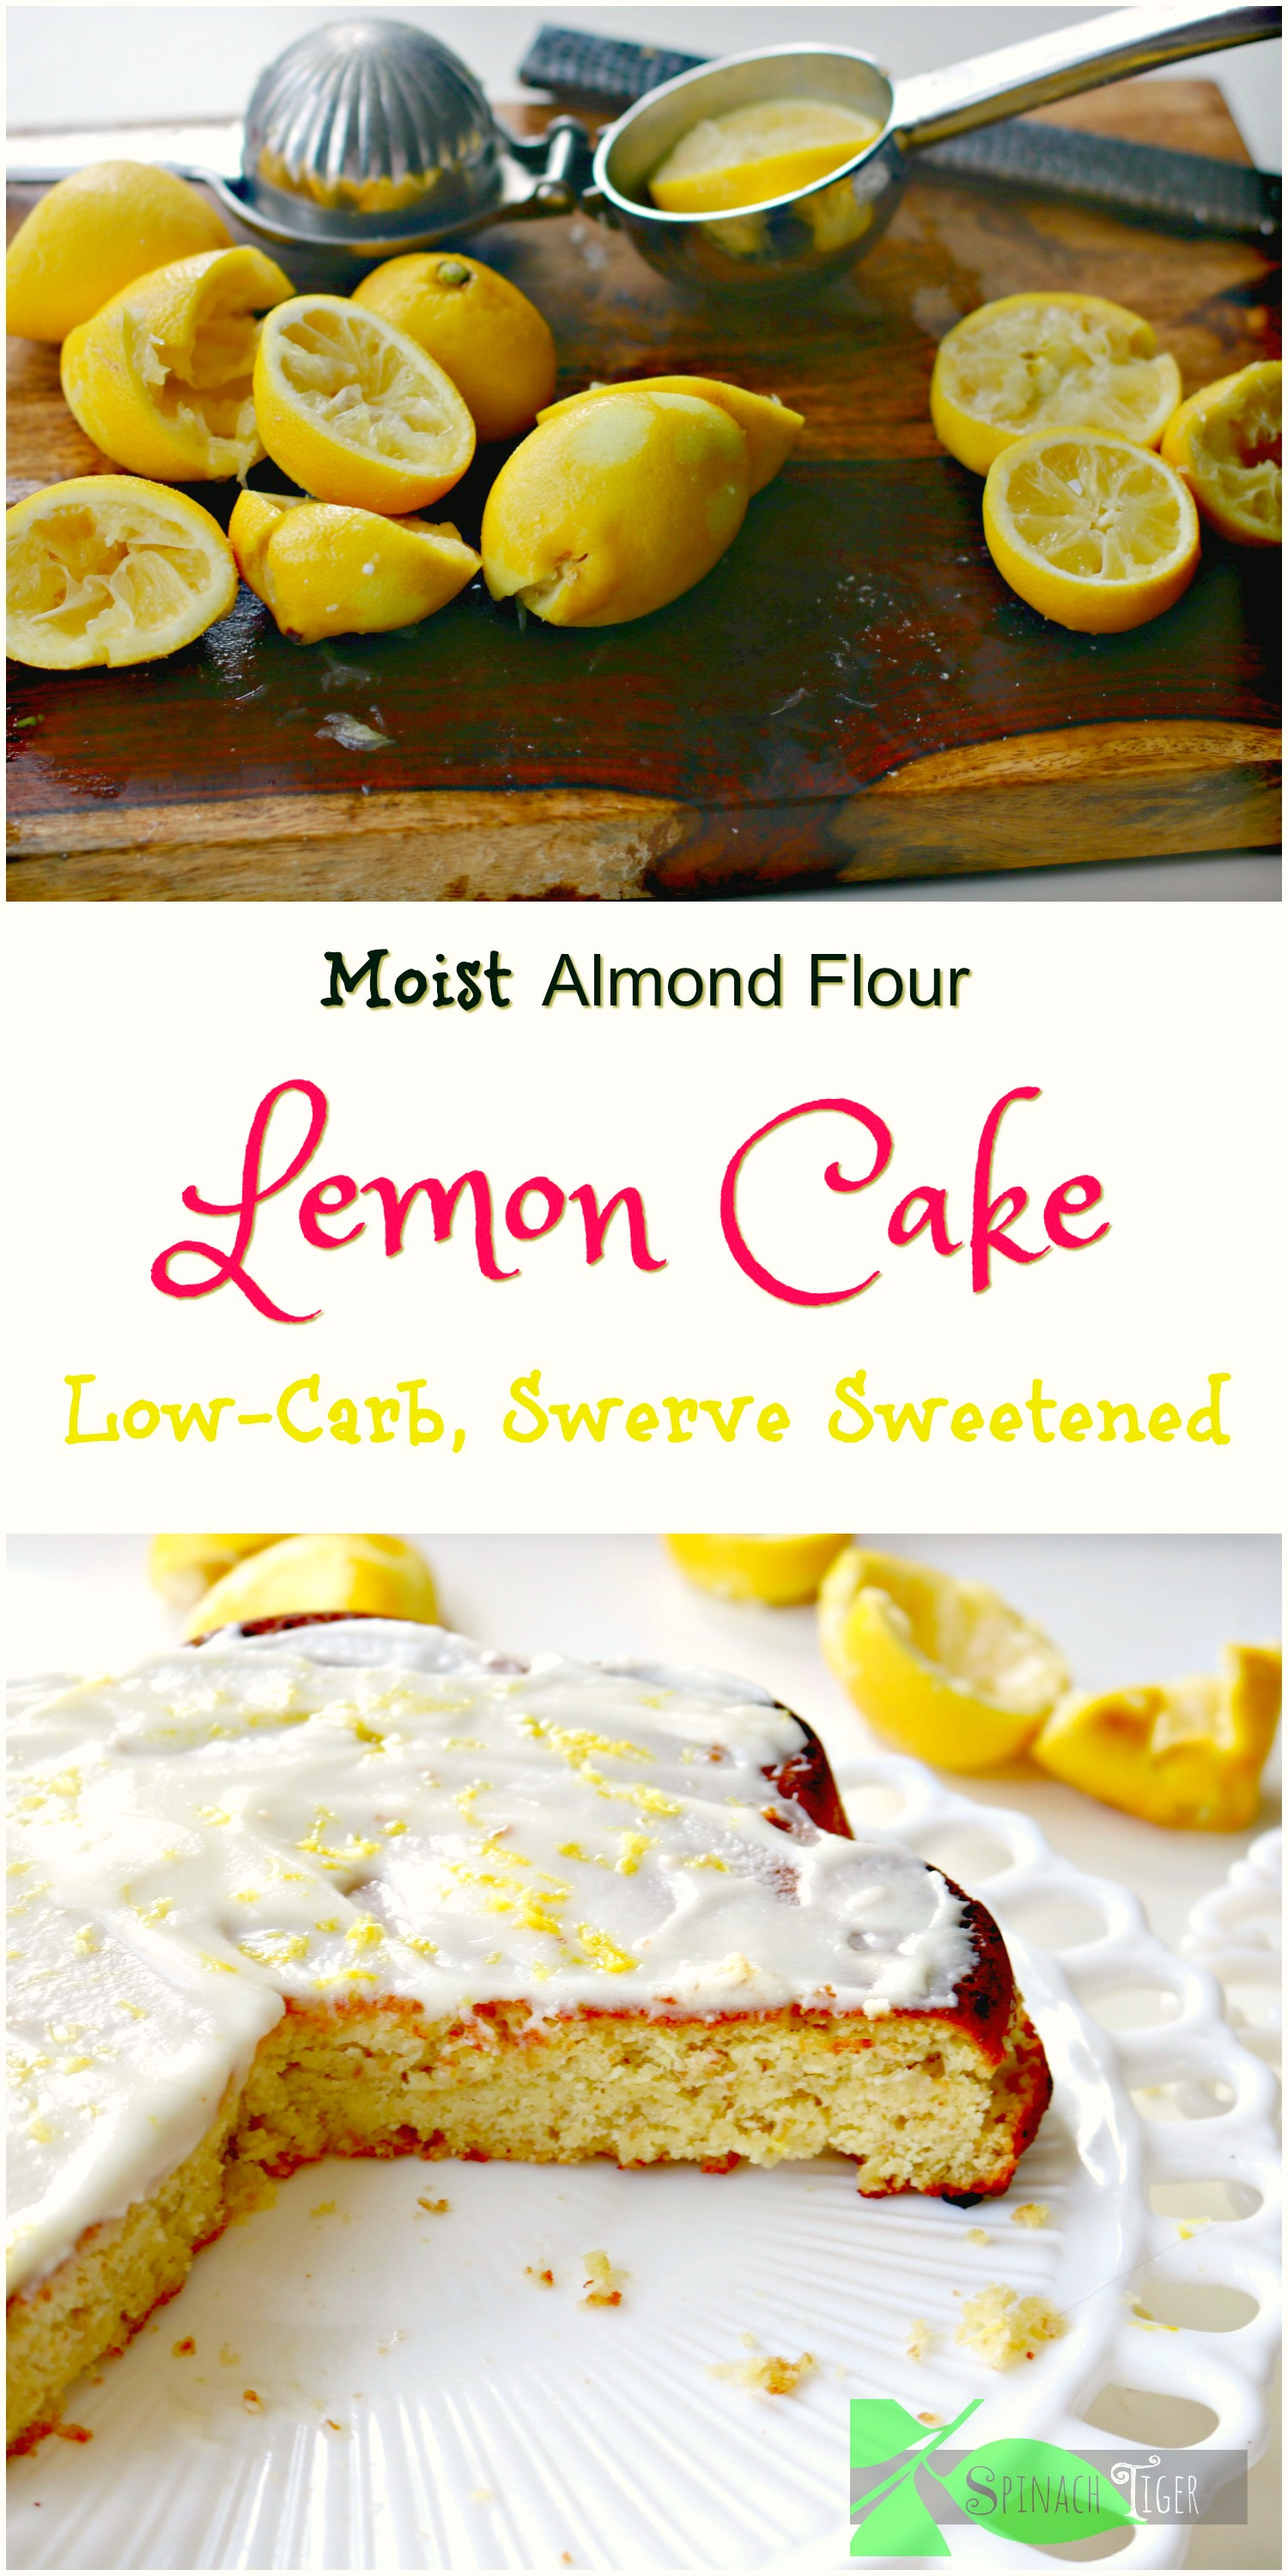 Best Moist lemon cake, keto, low carb, paleo from spinach tiger